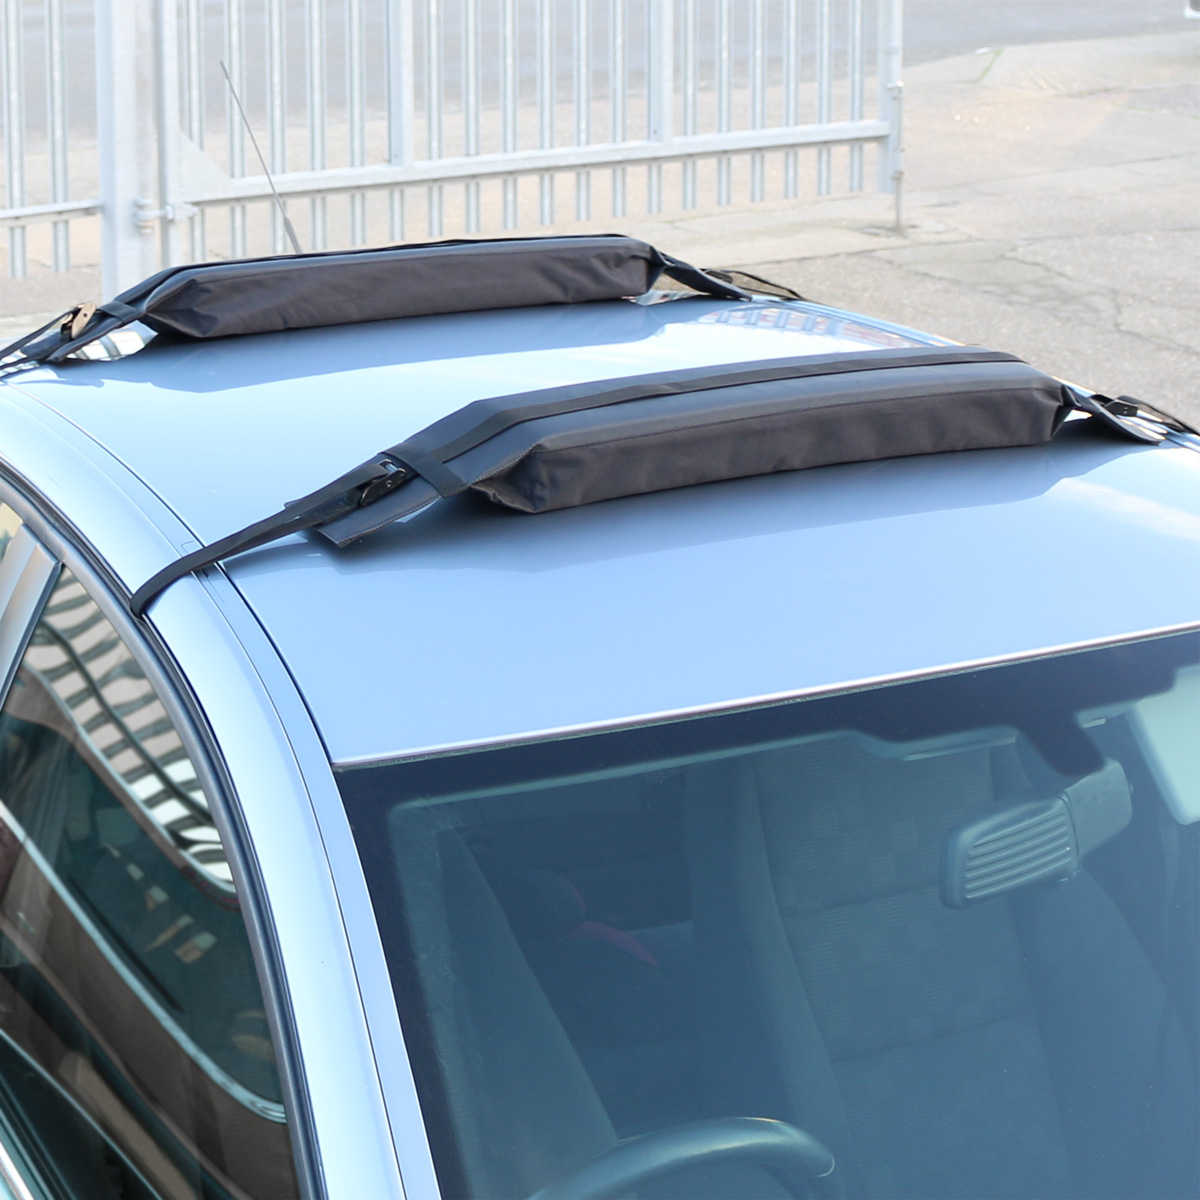 Kayak Roof Rack For Cars >> PAIR OF UNIVERSAL SOFT/PADDED CAR ROOF BARS LUGGAGE/KAYAK/SURFBOARD RACK/CARRIER 5051990719941 ...